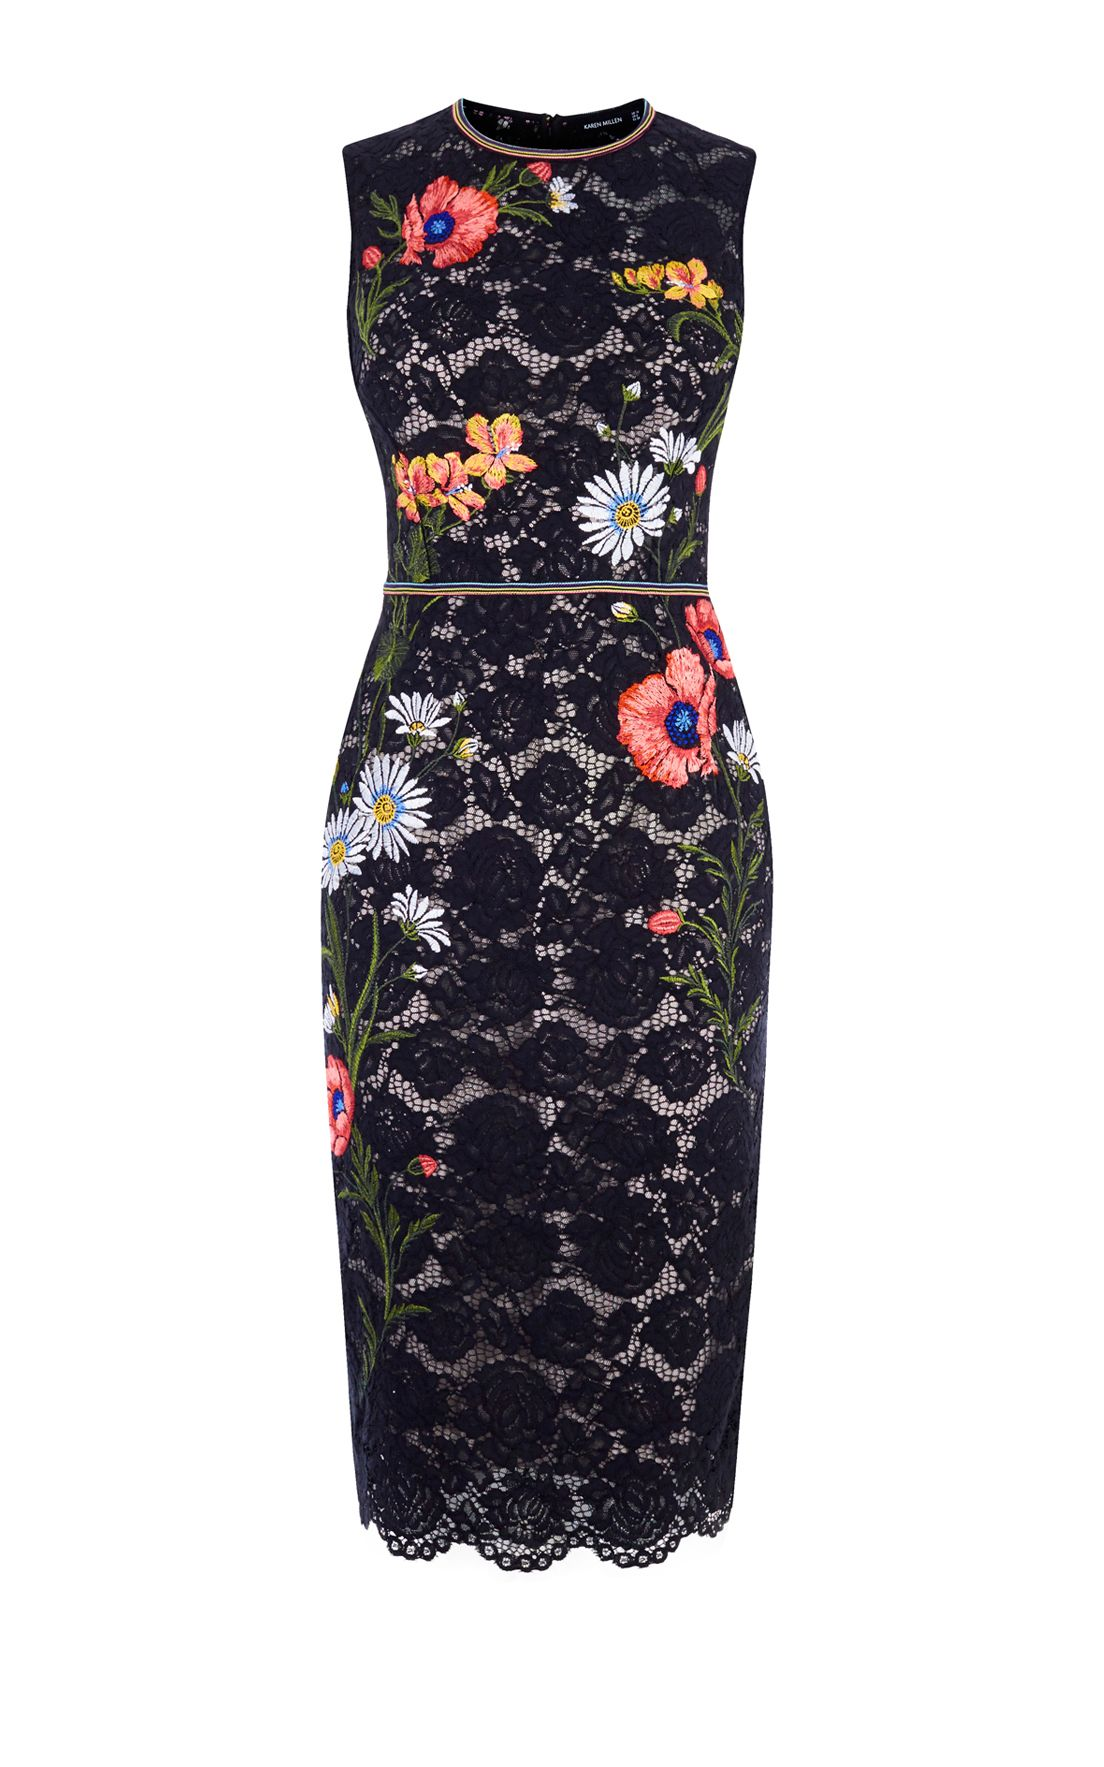 Karen Millen Lace Embroidered Pencil Dress, Black Multi